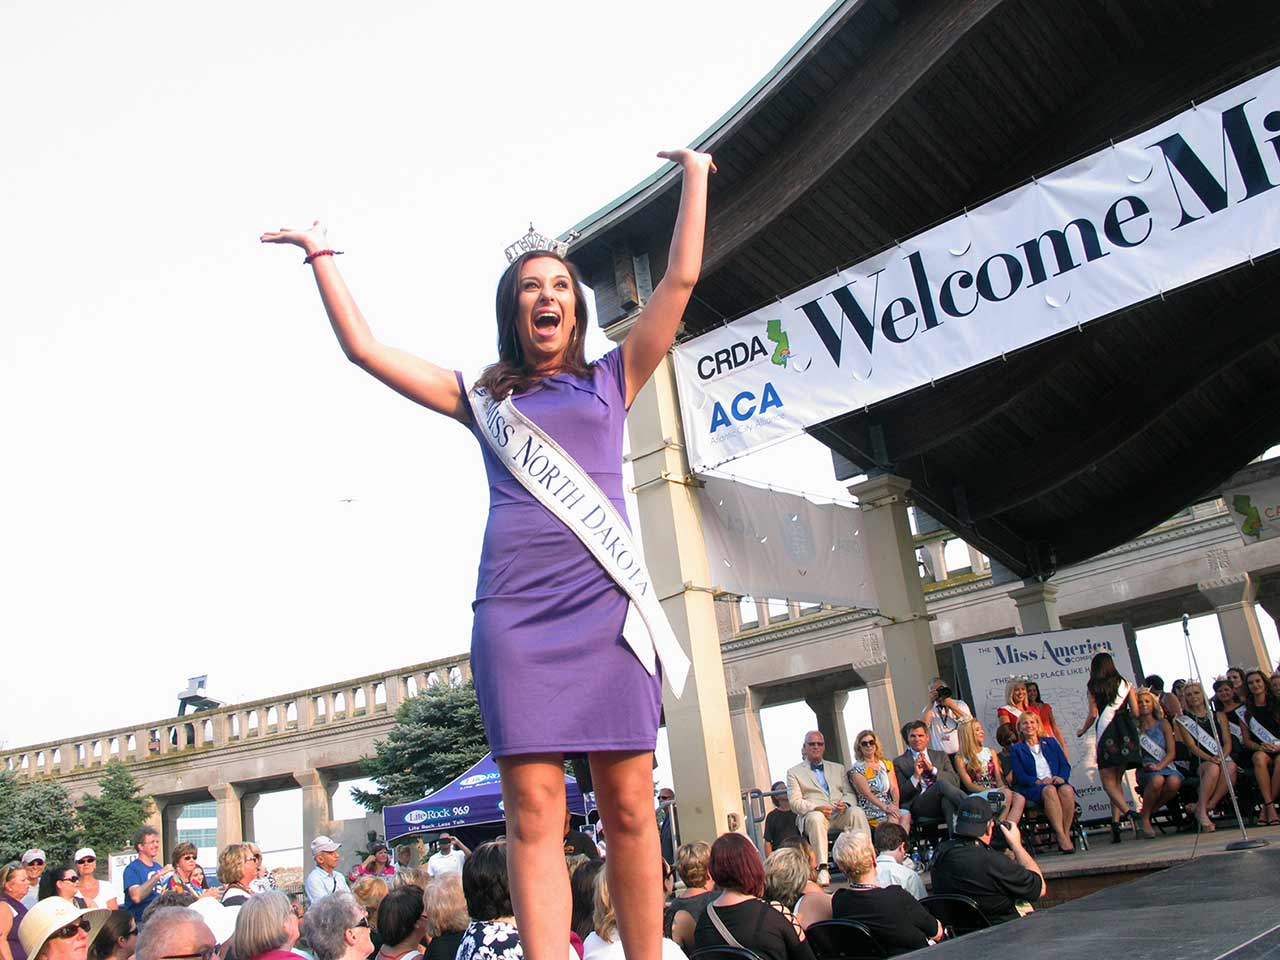 "<div class=""meta image-caption""><div class=""origin-logo origin-image ap""><span>AP</span></div><span class=""caption-text"">Miss North Dakota Delanie Wiedrich walks the runway at the traditional Miss America welcome ceremony on the Atlantic City Boardwalk on Tuesday, Sept. 1, 2015. (AP Photo/Wayne Parry)</span></div>"